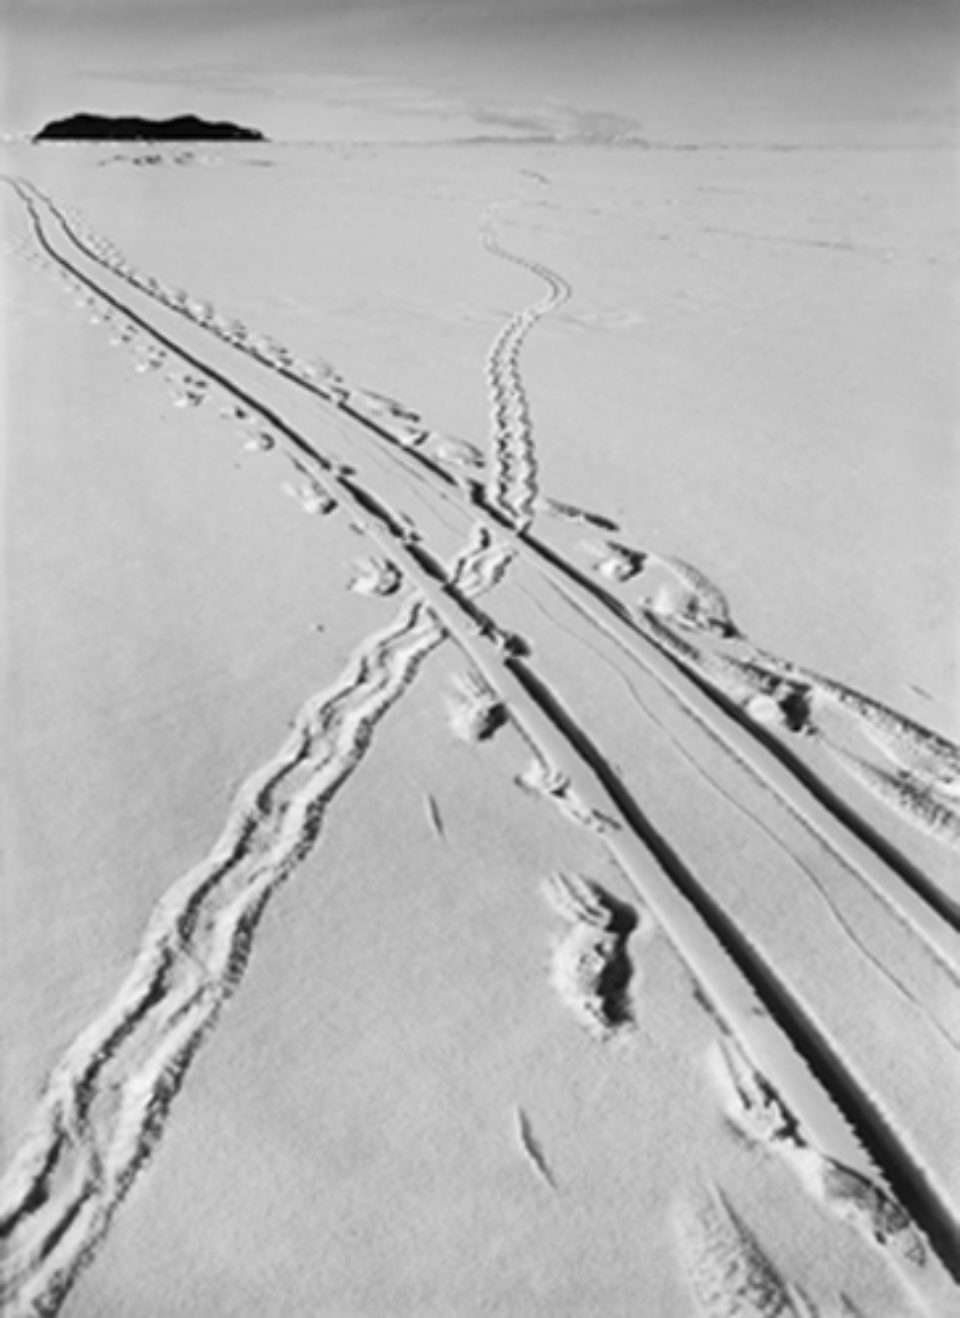 Herbert G. Ponting: Adelie Penguins track and sledge track crossing 08.12.1911 Embossed on recto, numbered on verso Modern Platinum palladium print Two different sizes available Ed. of 20